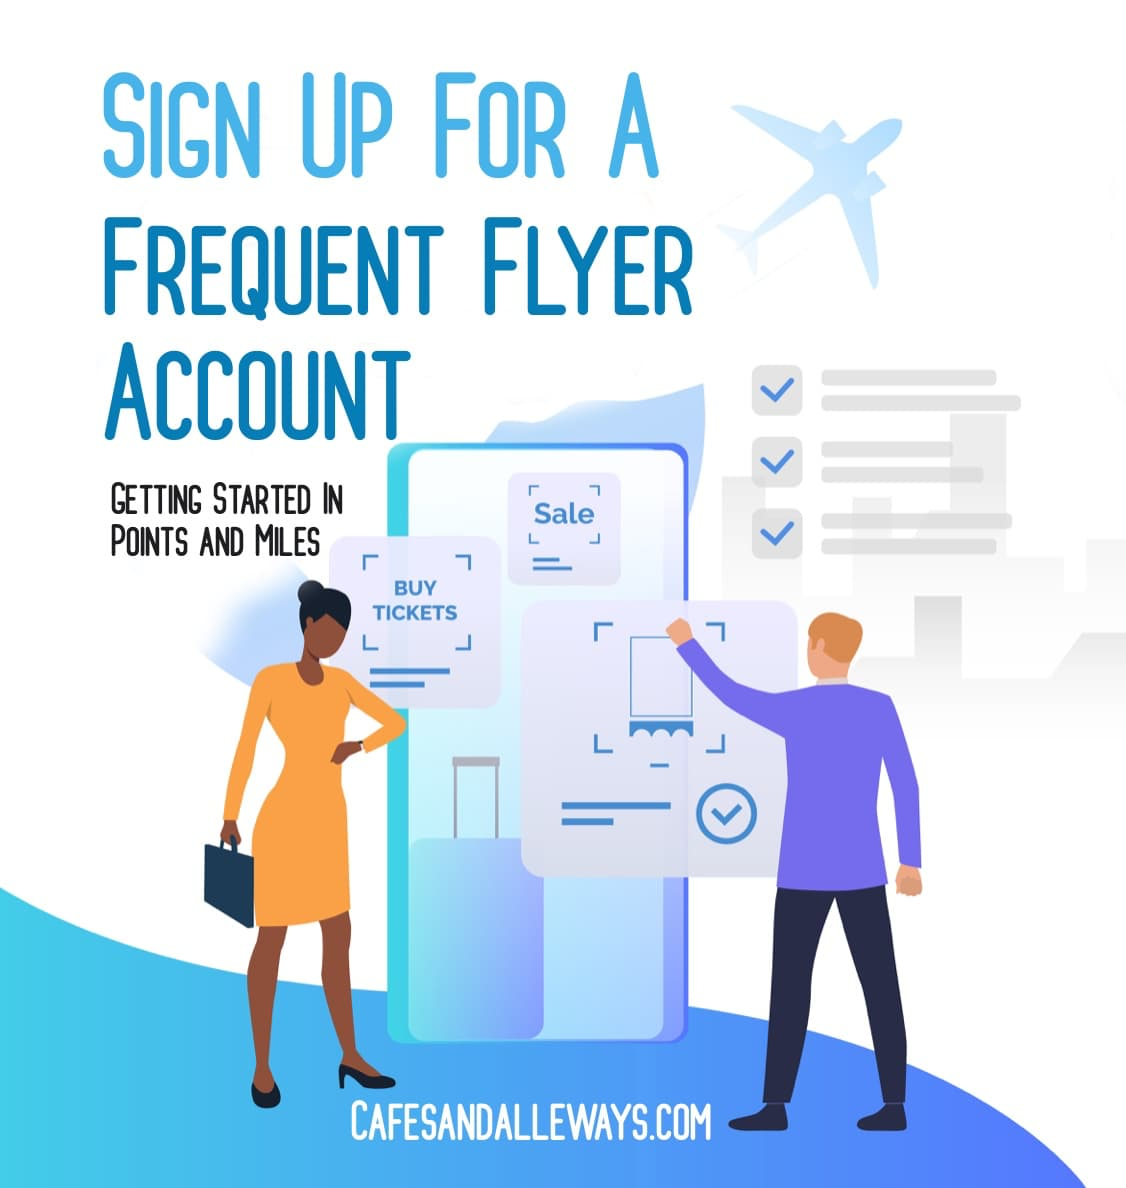 Sign Up For A Frequent Flyer Account (or other rewards program).